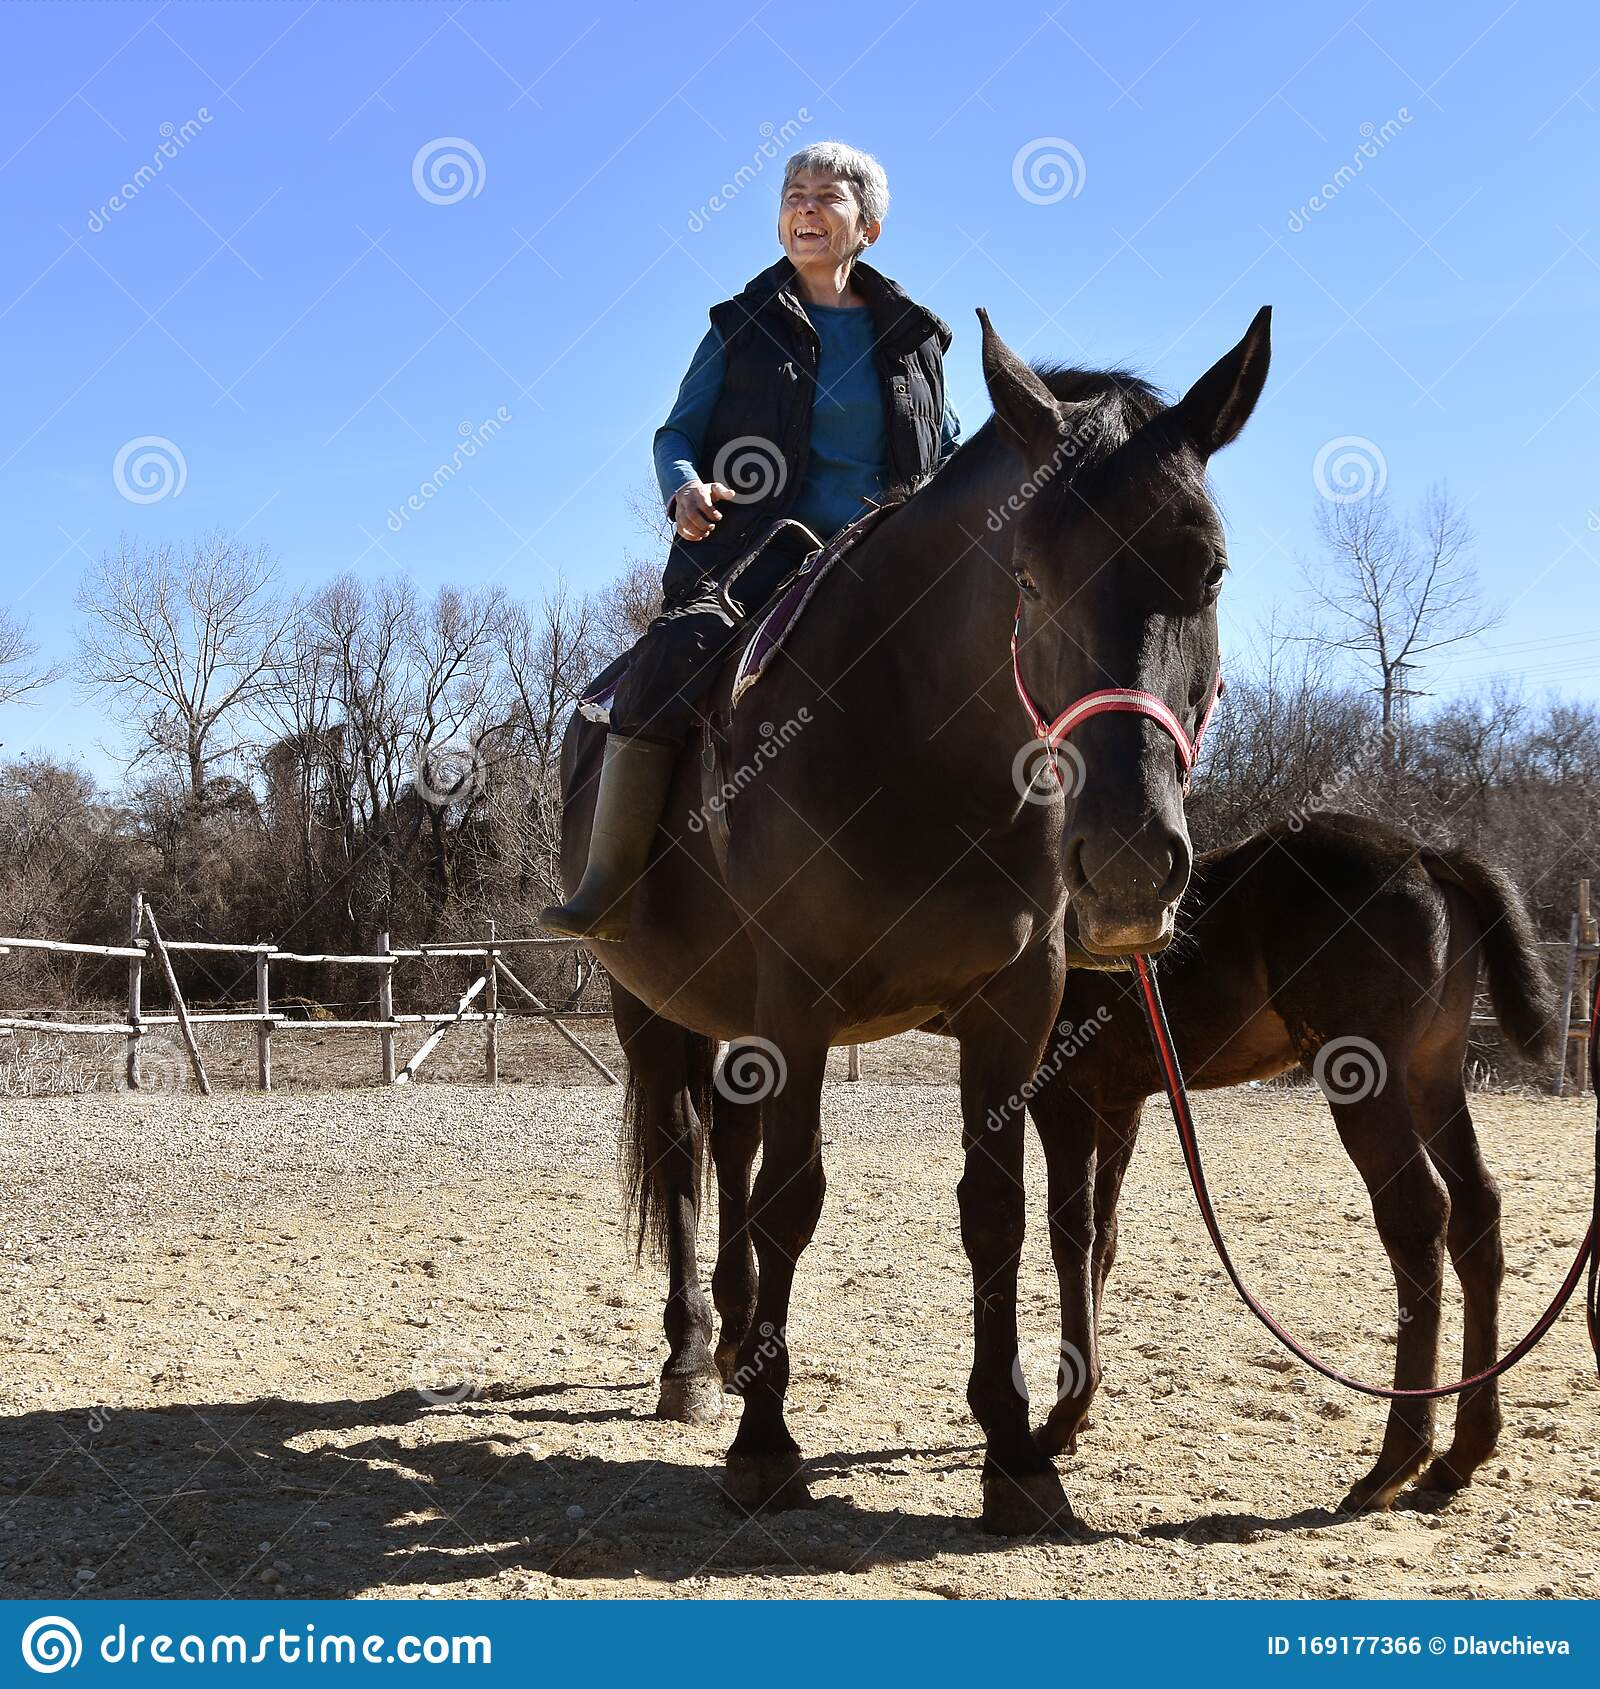 Horse Riding Therapy For Senior People Stock Photo Image Of Happy Equestrian 169177366